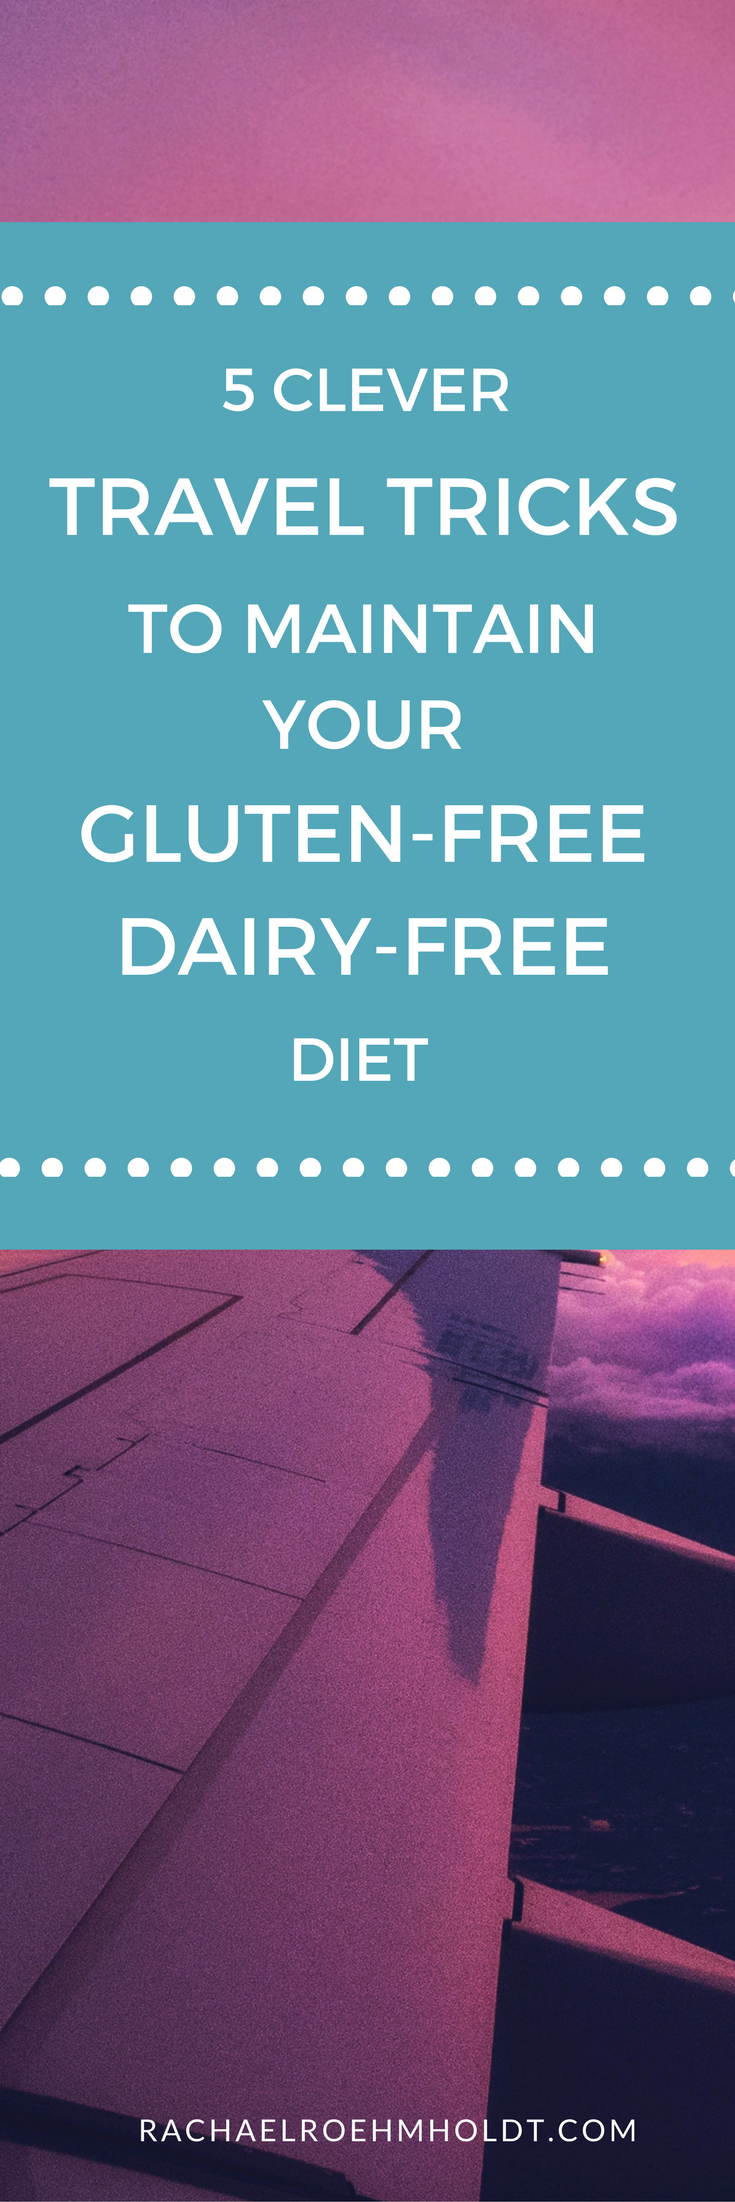 5 Clever Travel Tricks to Maintain Your Gluten-free Dairy-free Diet from RachaelRoehmholdt.com